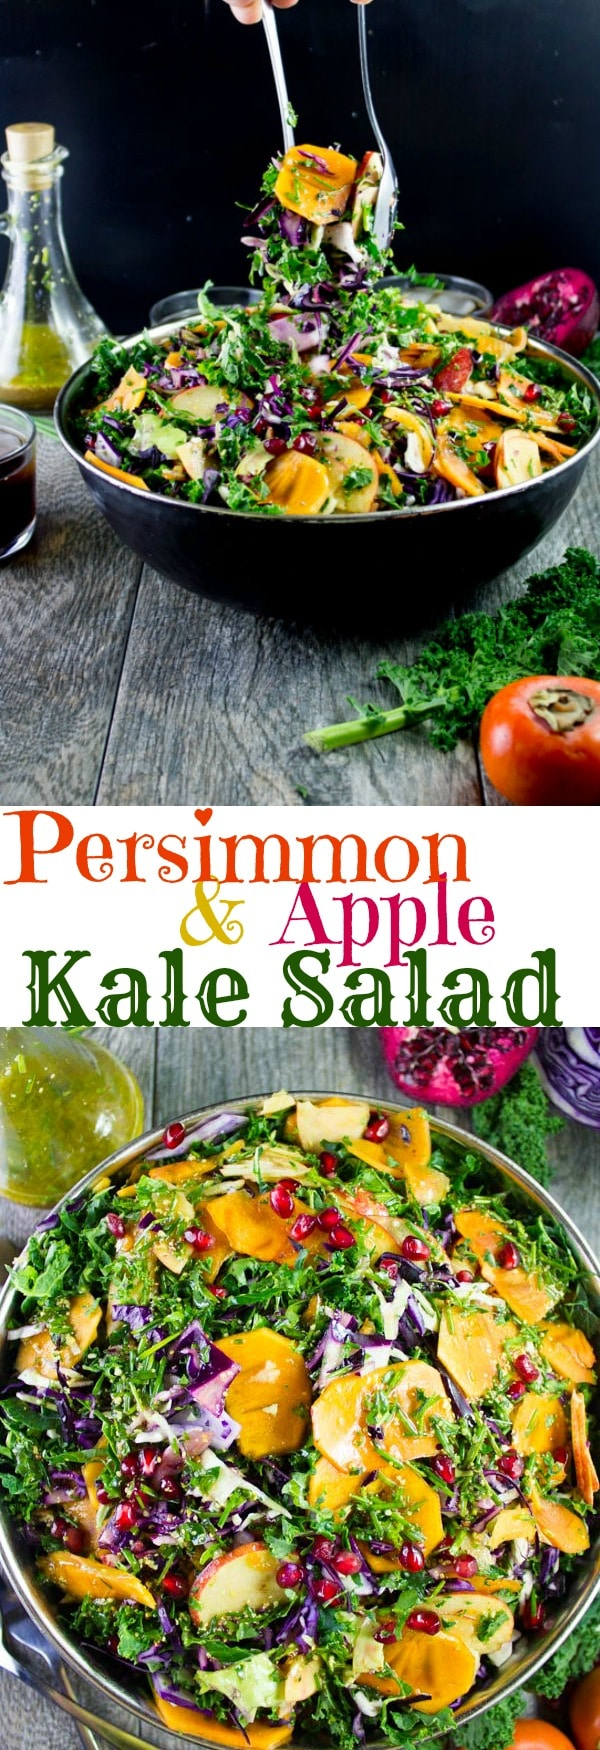 Persimmon & Apple Kale Salad | This Kale Salad with apples, persimmon, cabbage and pomegranate seeds is a celebration of fall fruit and vegetables! Serve this vegan, healthy and delicious superfood salad with my sweet Coca-Cola Dressing! #salad, #kale, #superfood, #vegan, #realfood, #mealprep, #easy, #healthy